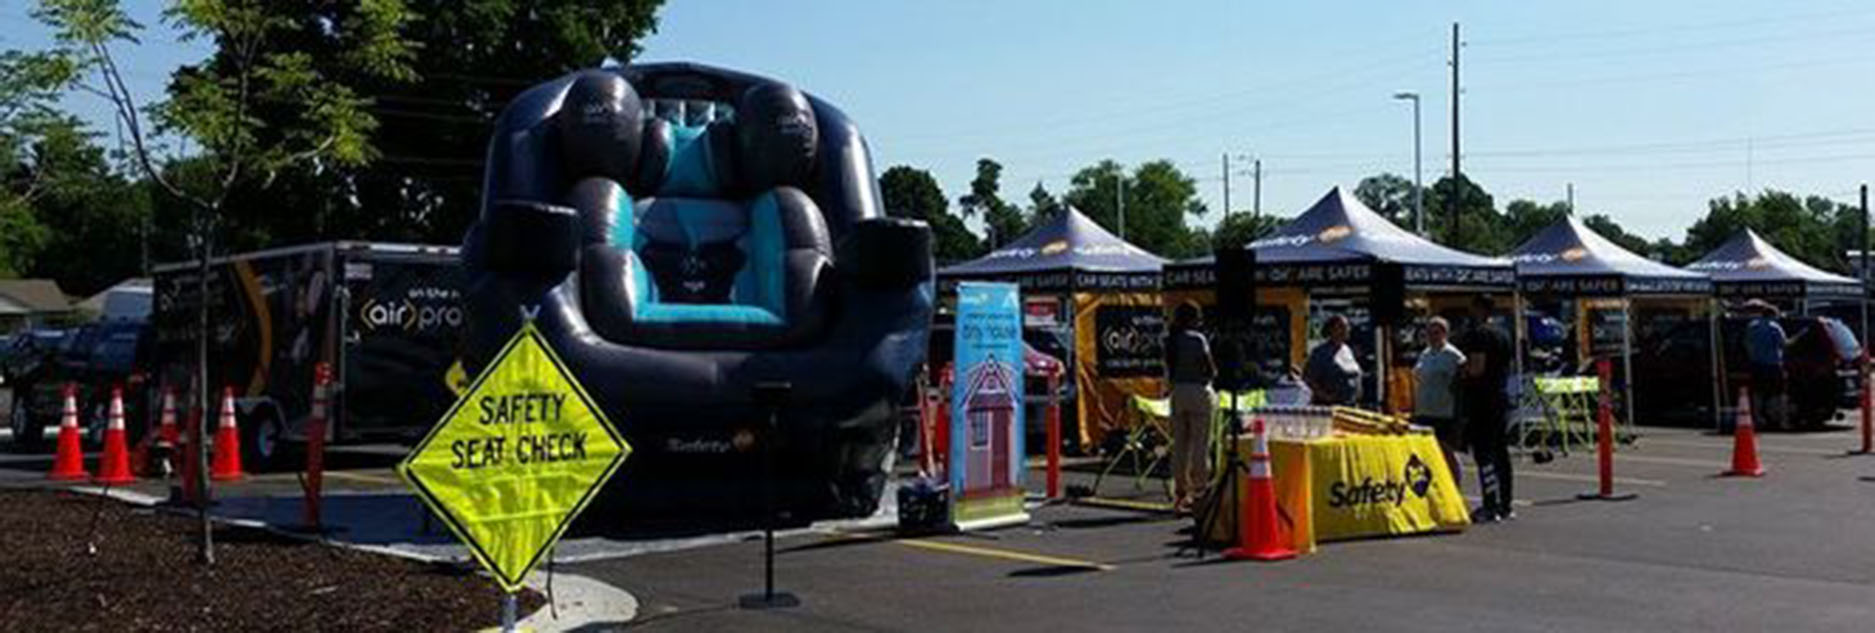 inflatable-car-seat-at-event.jpg